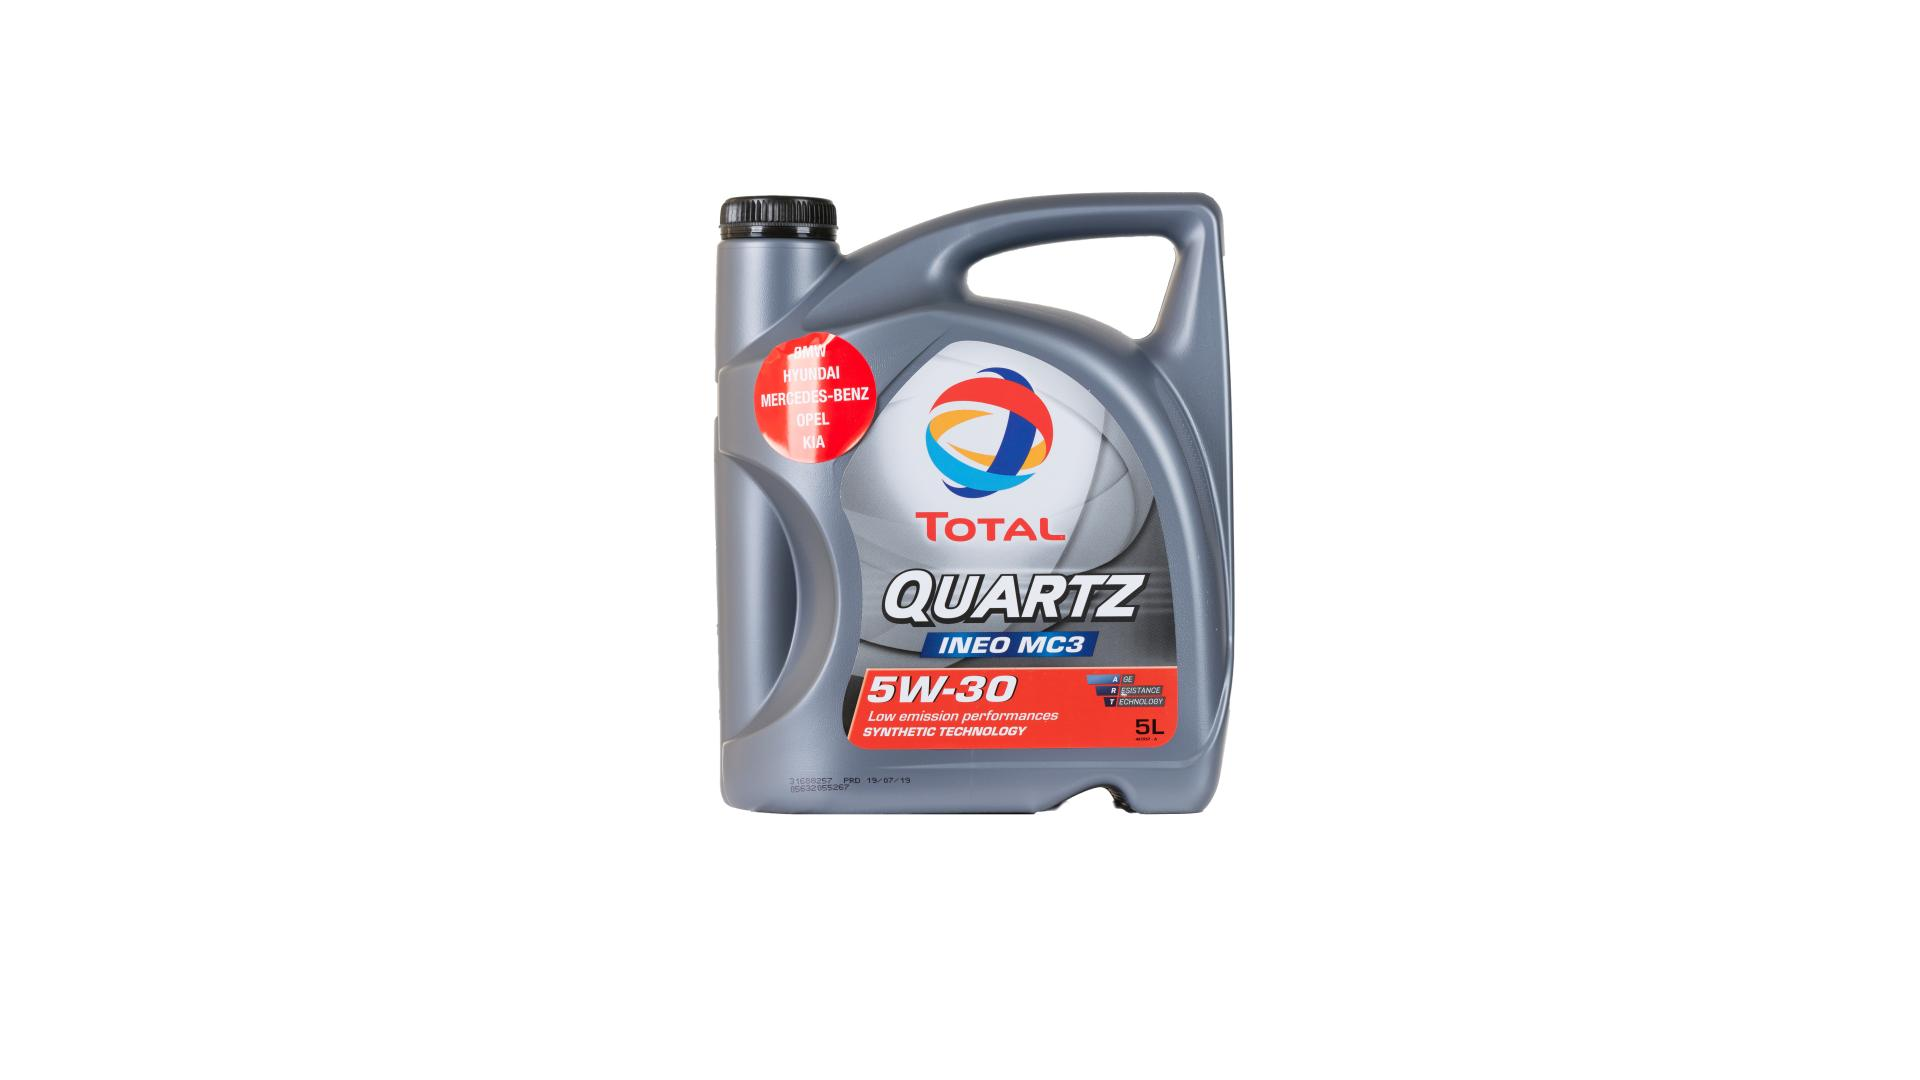 Total 5w-30 Quartz Ineo MC3 5L (157103)